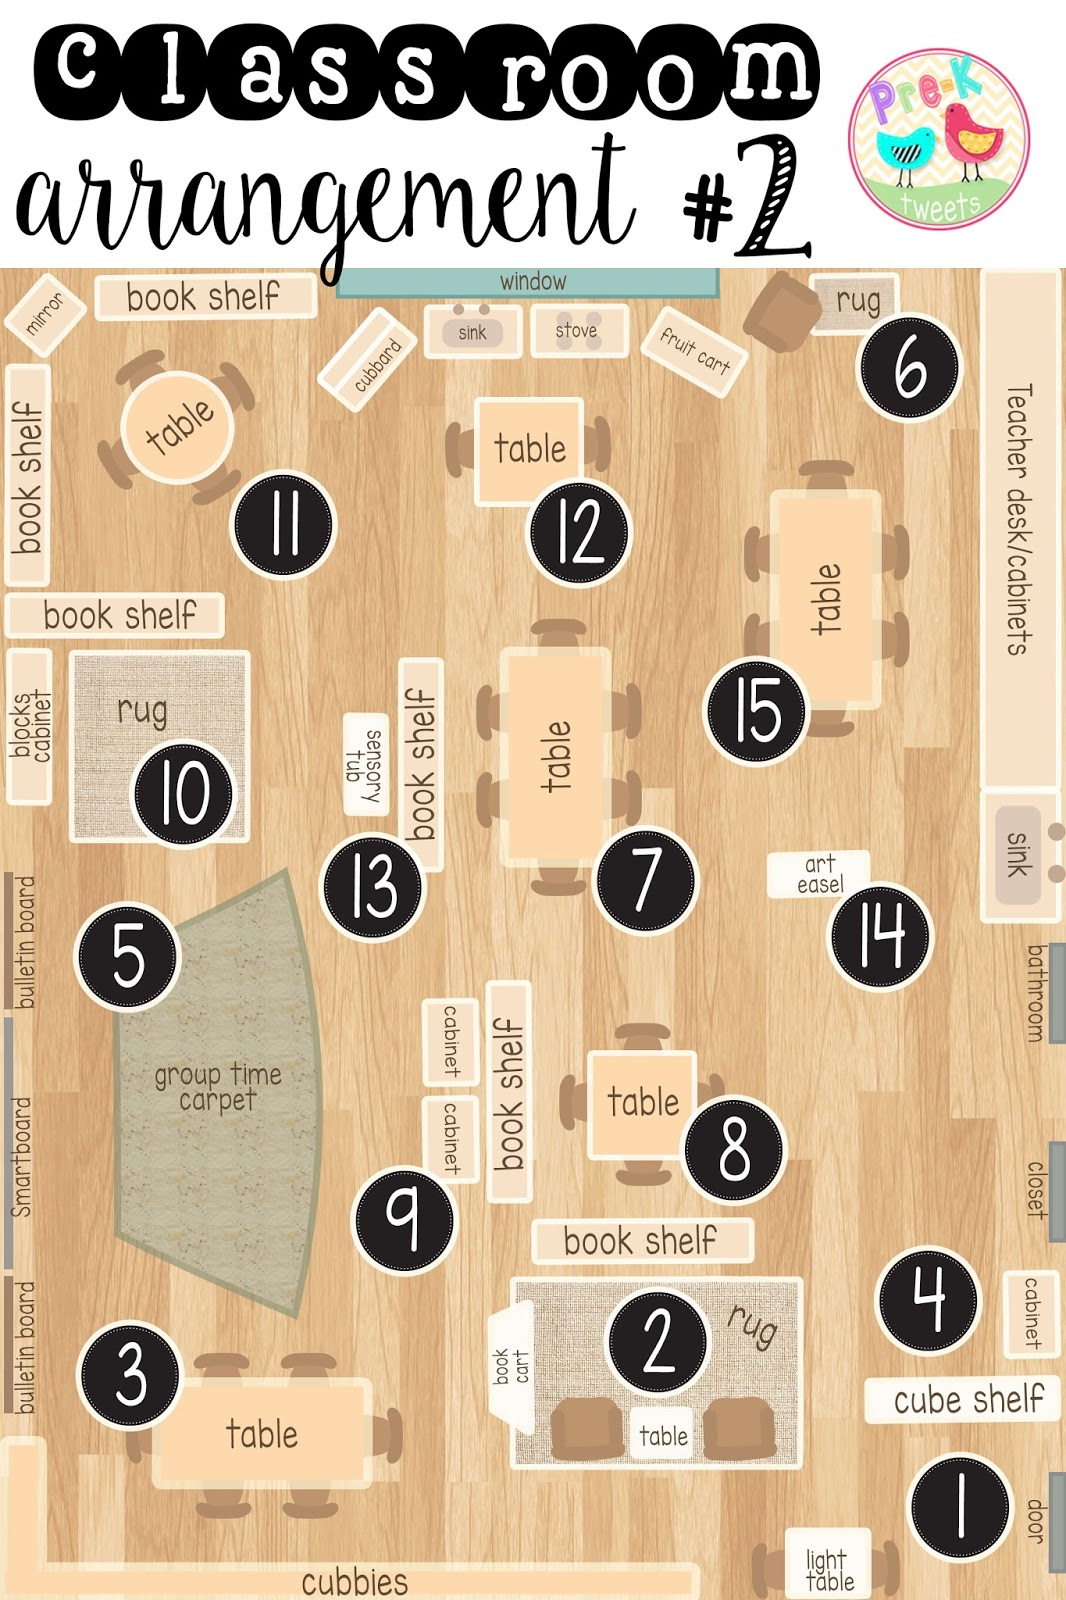 medium resolution of where should you put your book shelves your group time carpet your storage